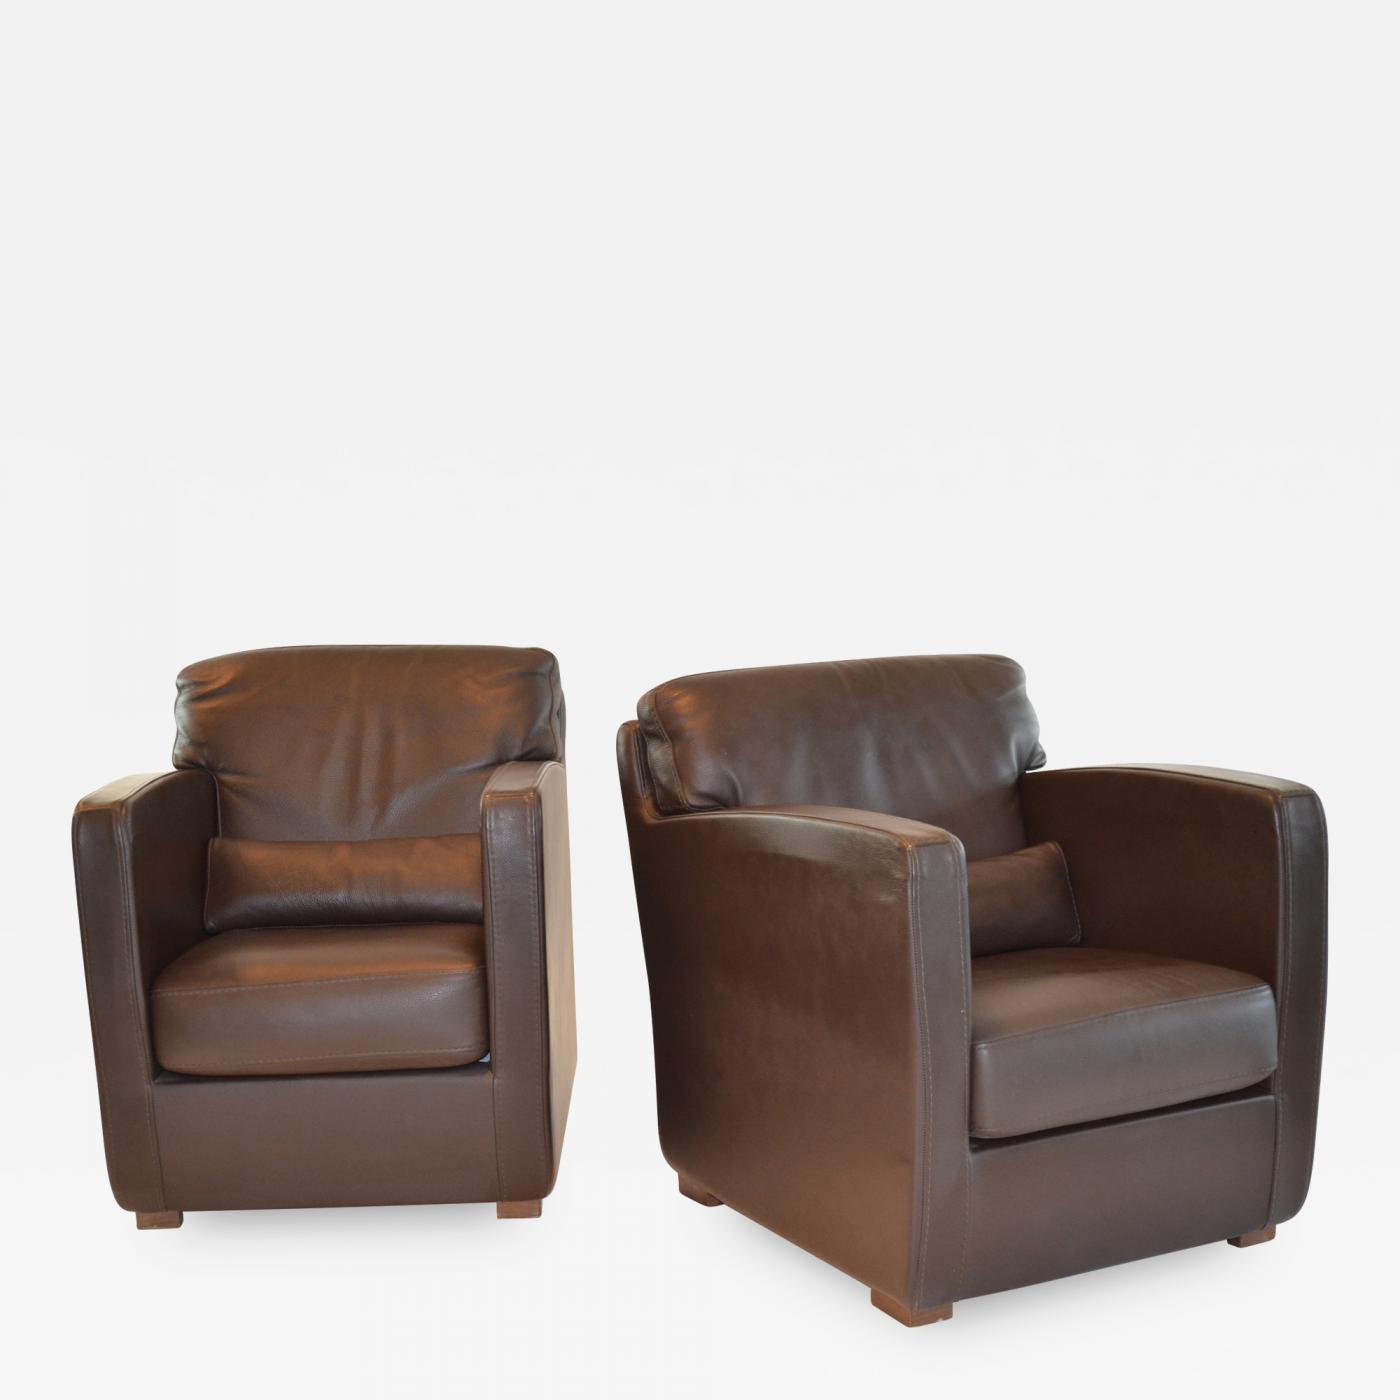 Sensational Roche Bobois Pair Of Leather Arm Or Club Chairs By Roche Bobois Cjindustries Chair Design For Home Cjindustriesco